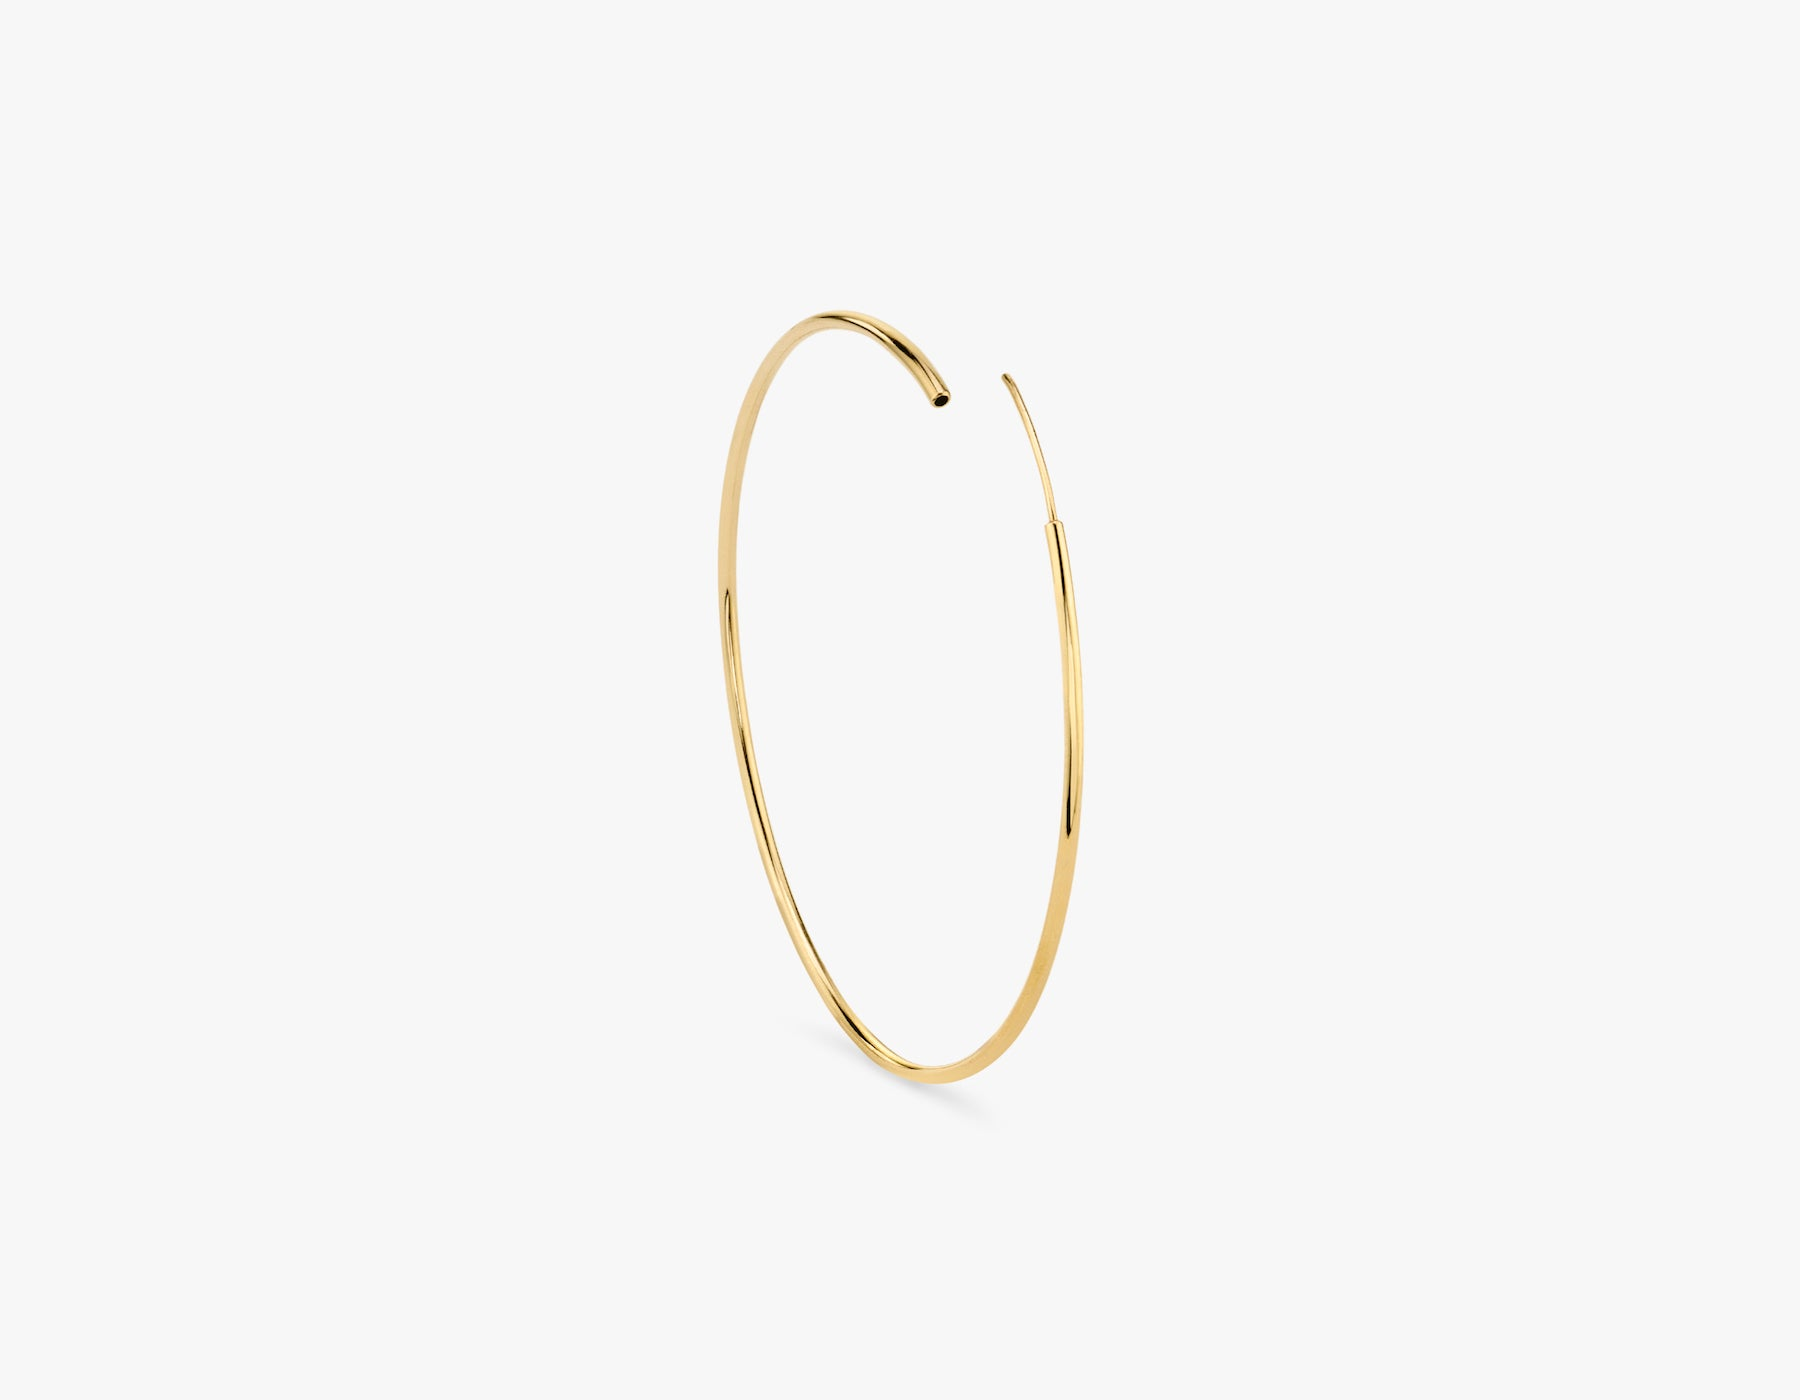 Vrai delicate classic 14k gold lightweight hoop earring, 14K Yellow Gold